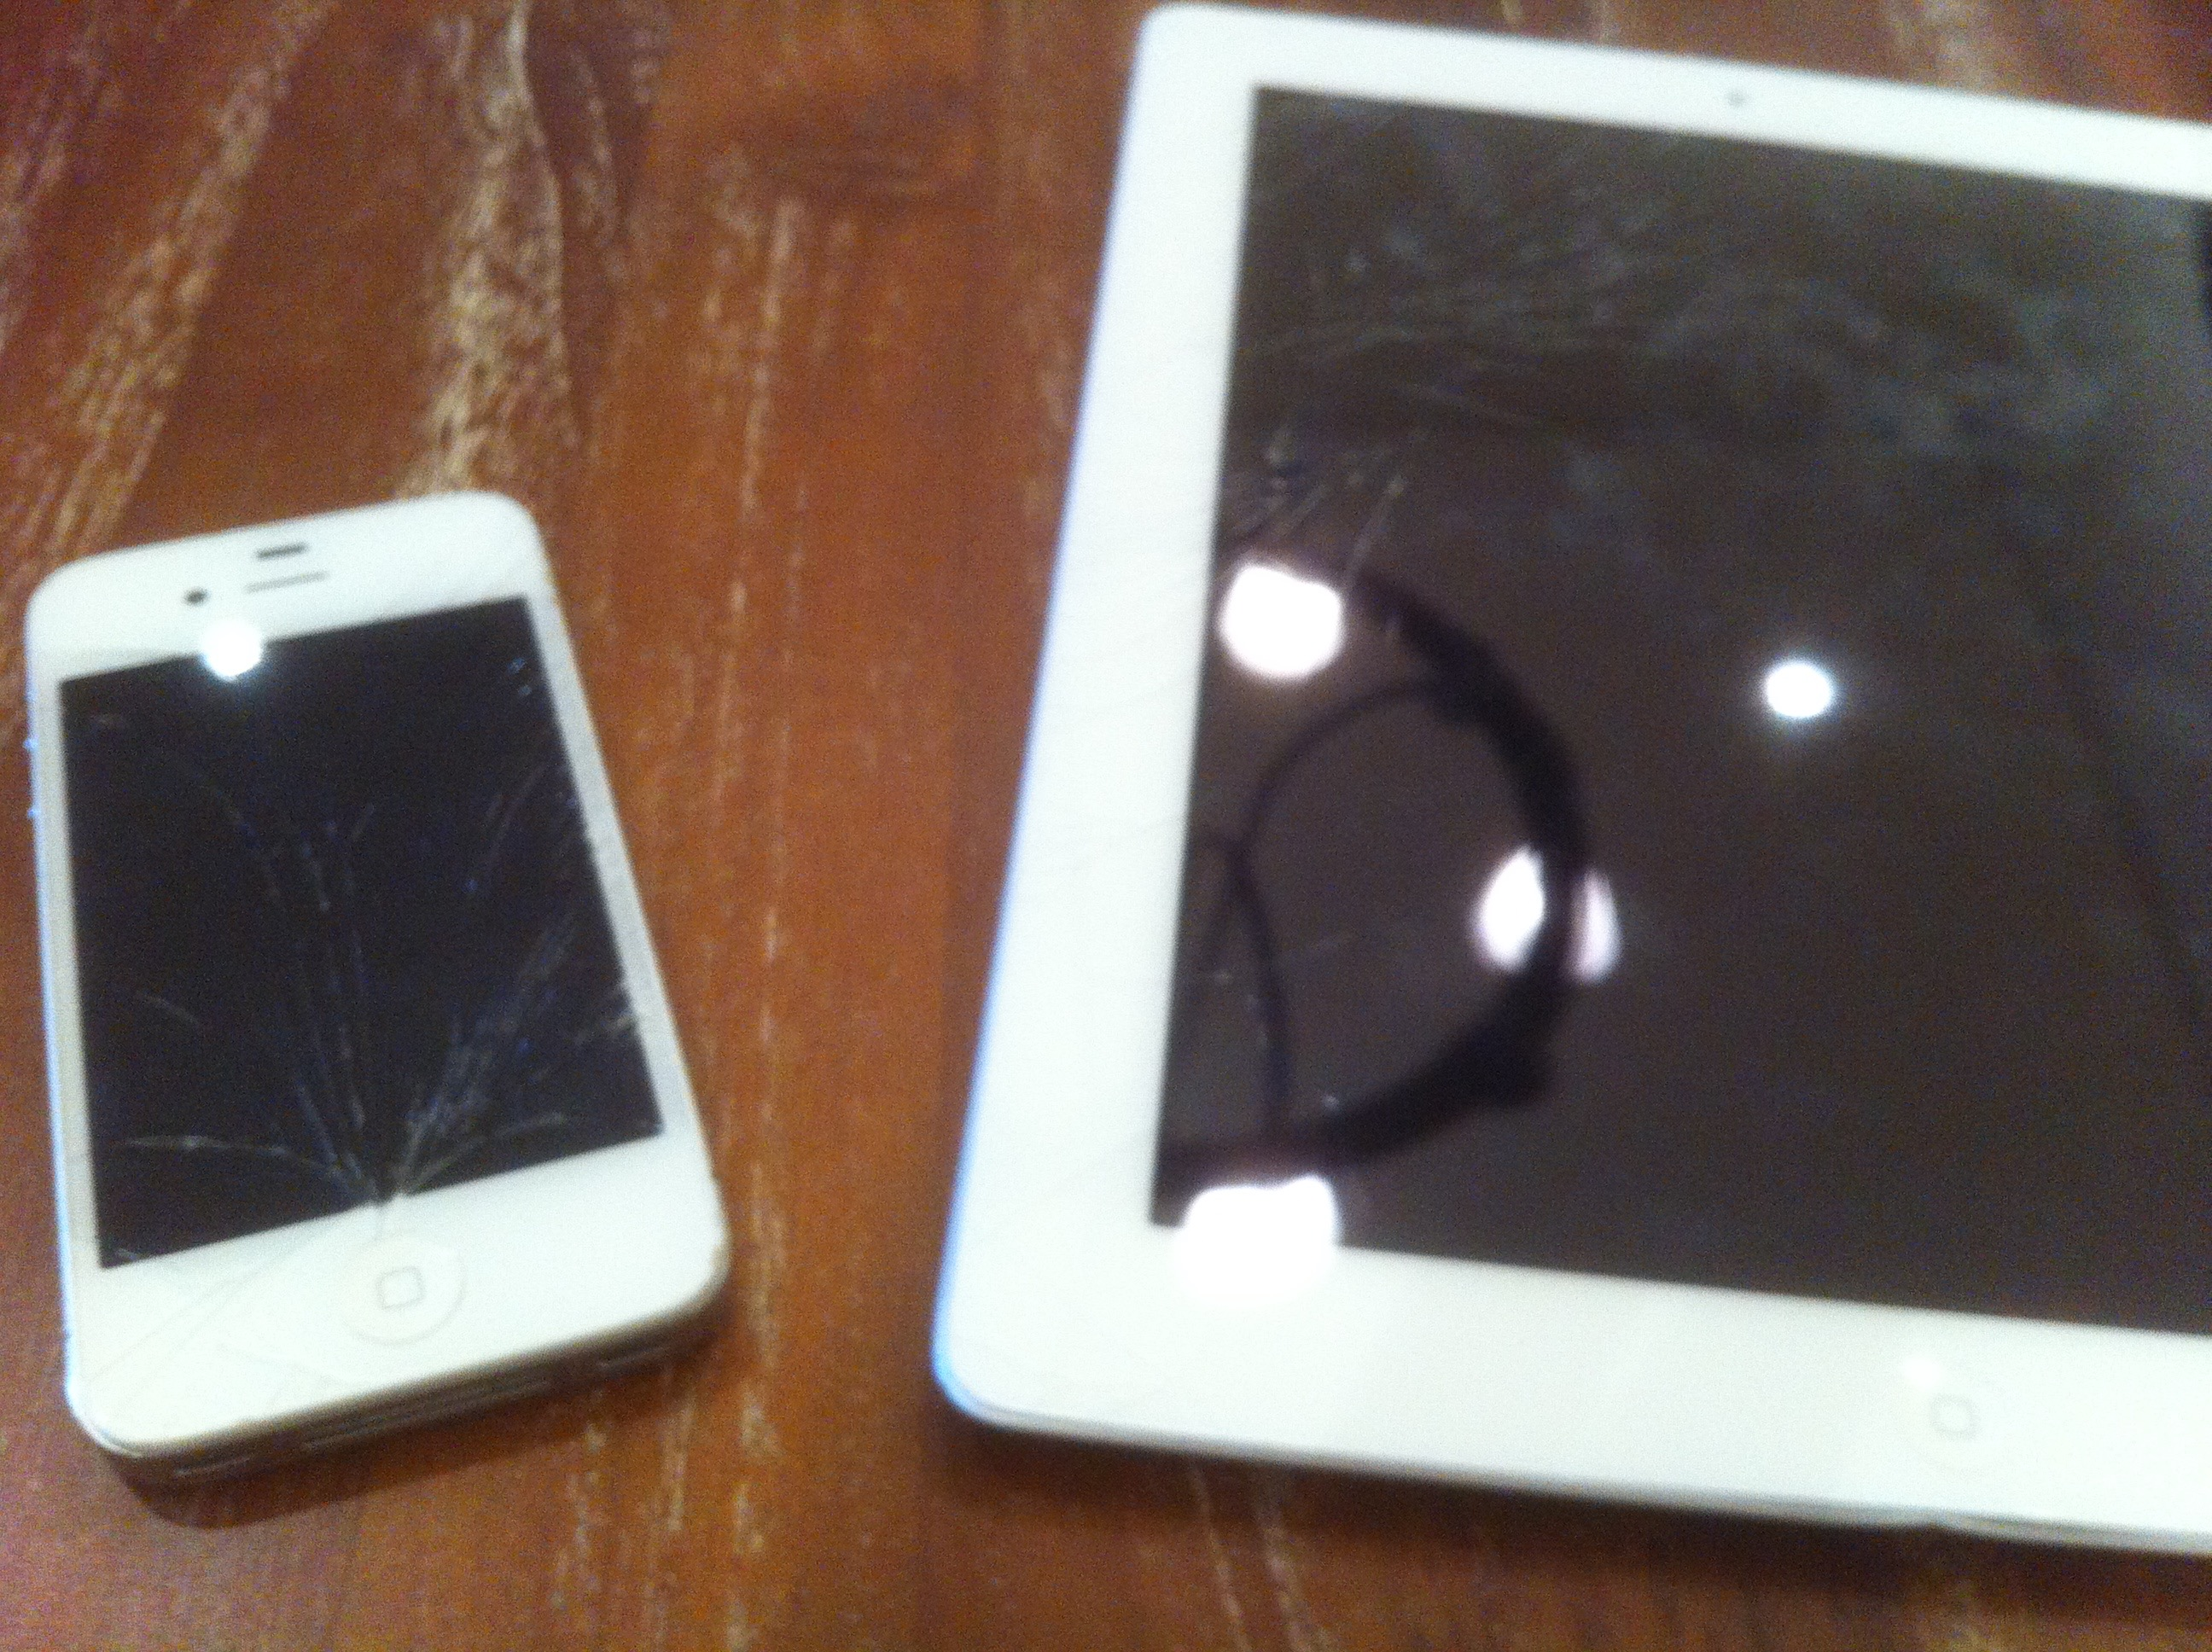 iPad Screen Repair in Abu Dhabi